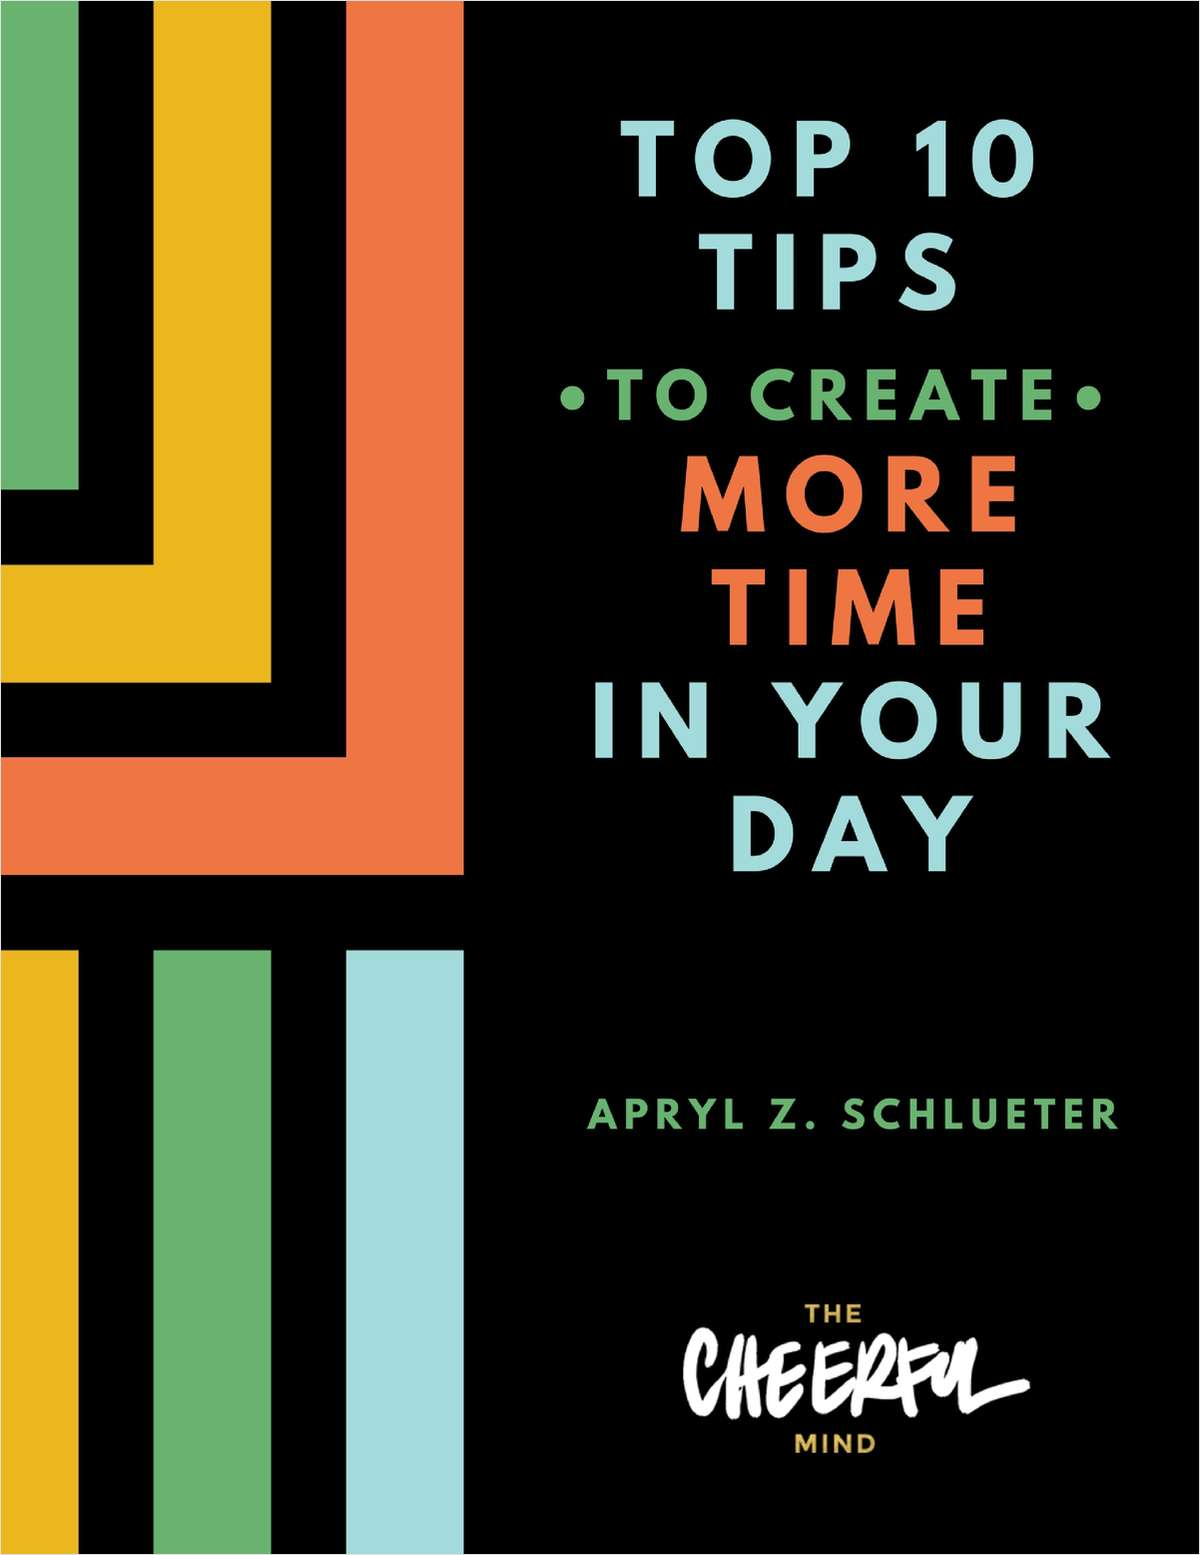 Top 10 Tips to Create More Time in Your Day